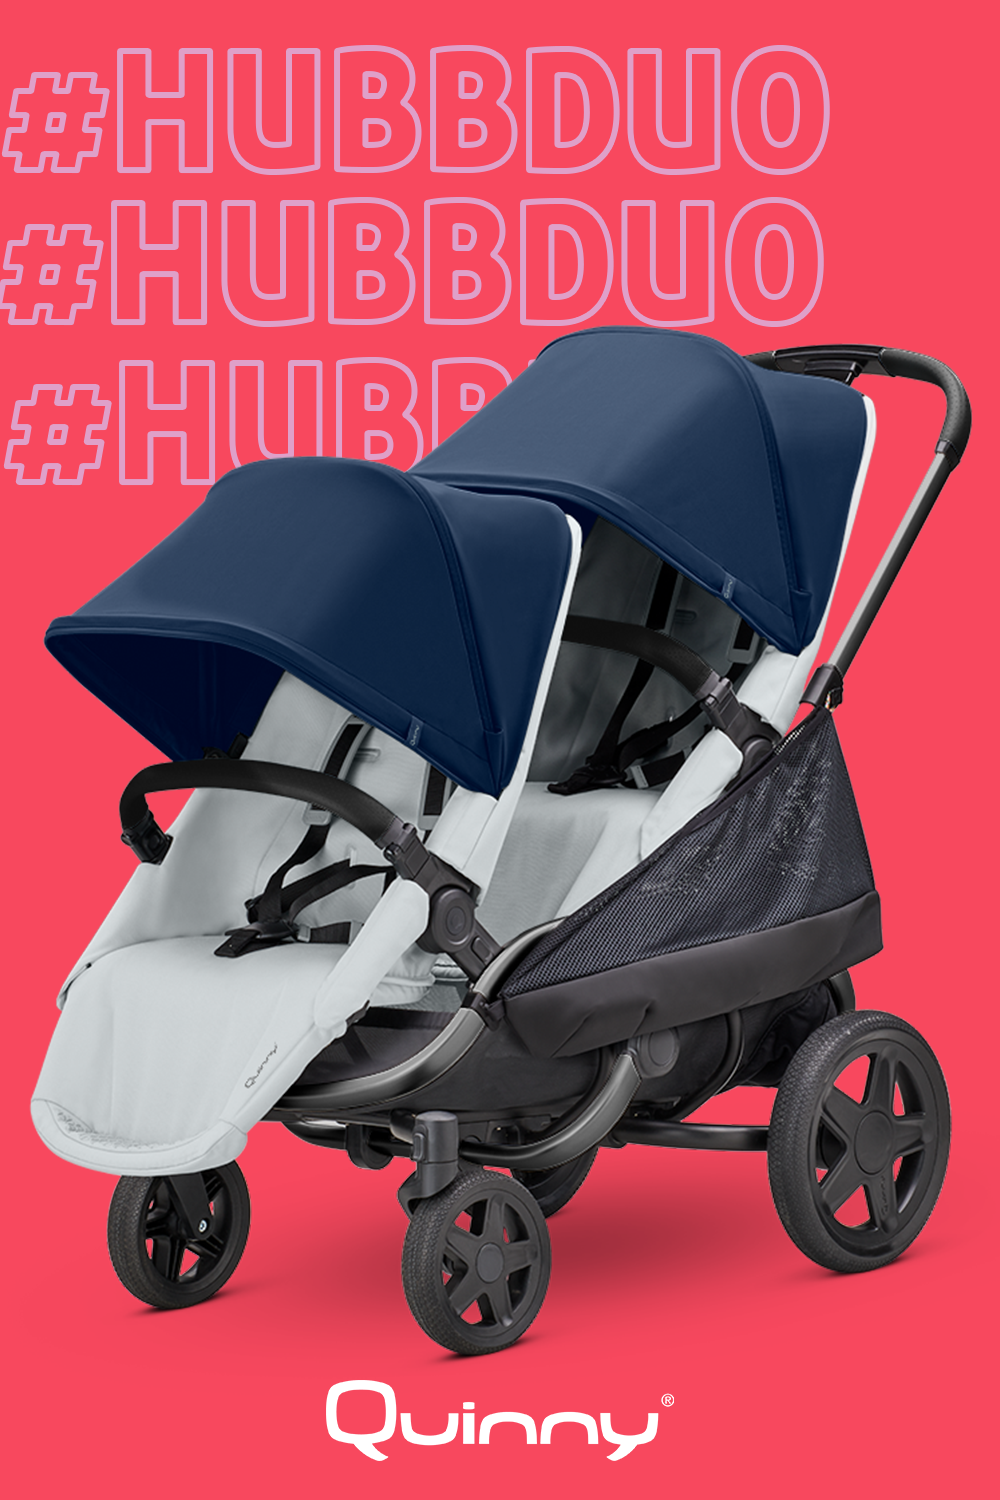 Meet the Quinny Hubb Duo, the comfortable twoseater